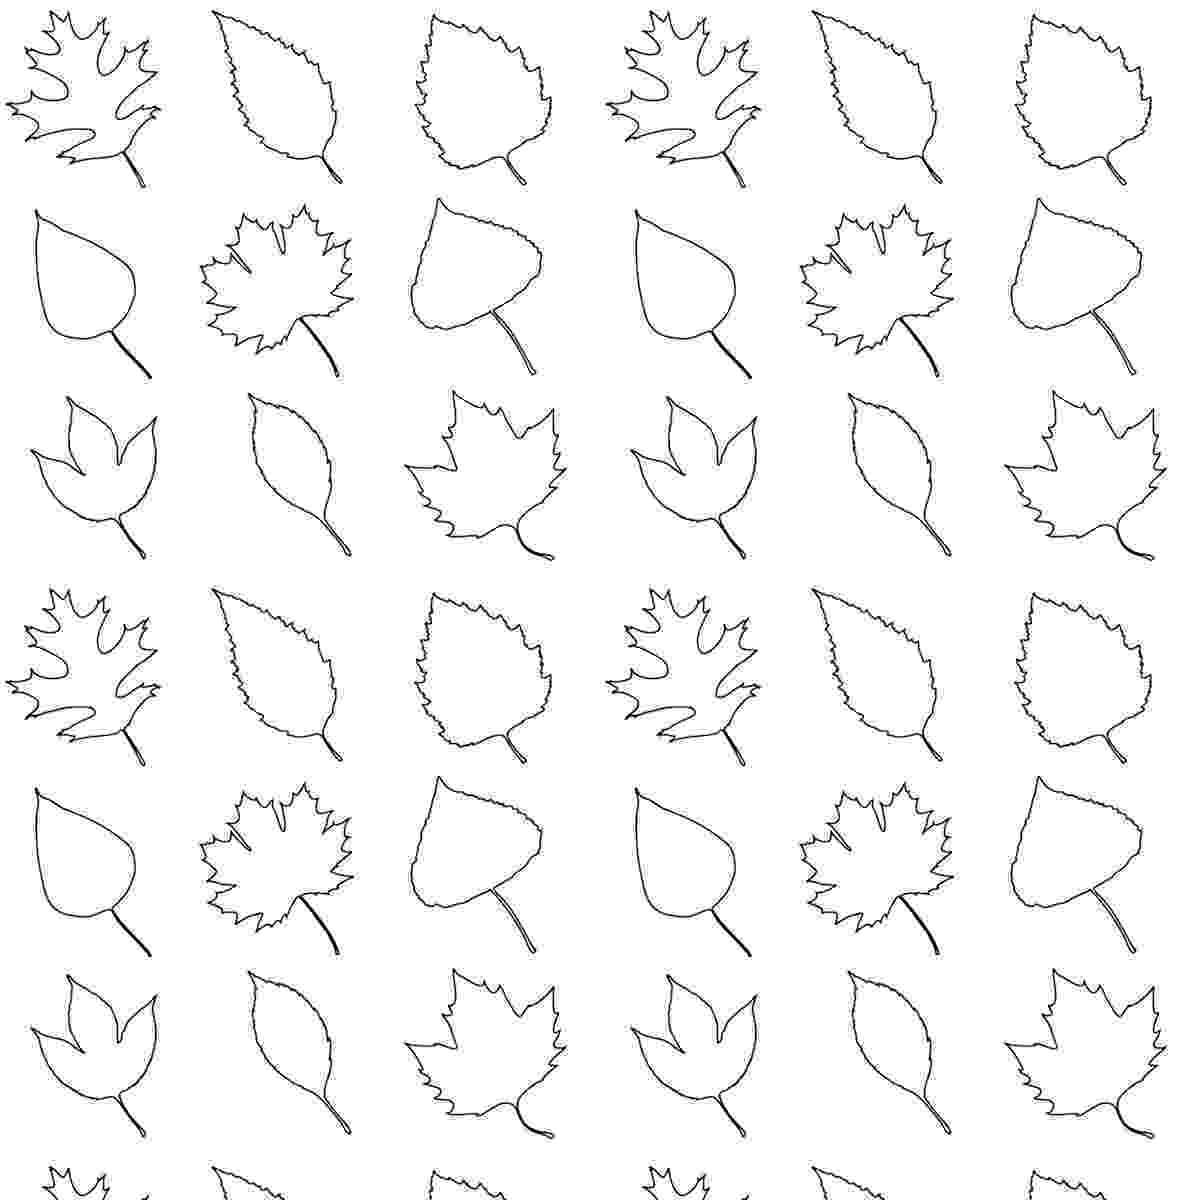 fall leaves print out free printable leaves coloring pattern paper print out leaves fall